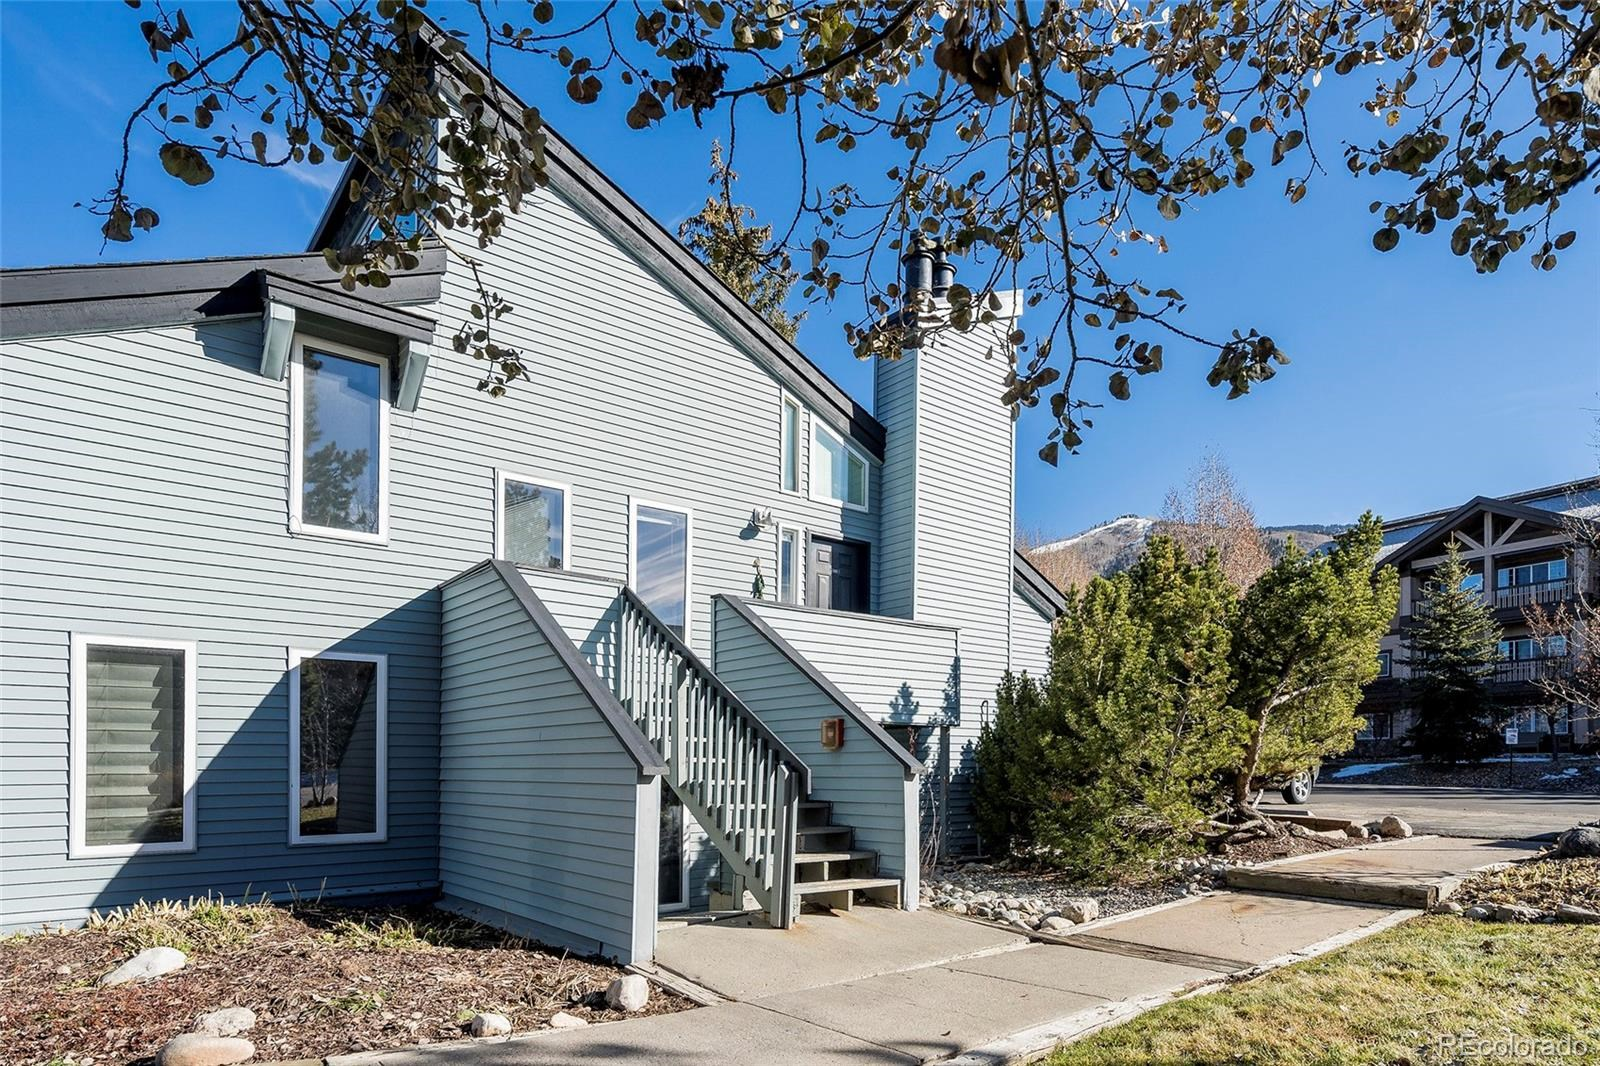 MLS# 3014040 - 12 - 3020 Village Drive #423, Steamboat Springs, CO 80487